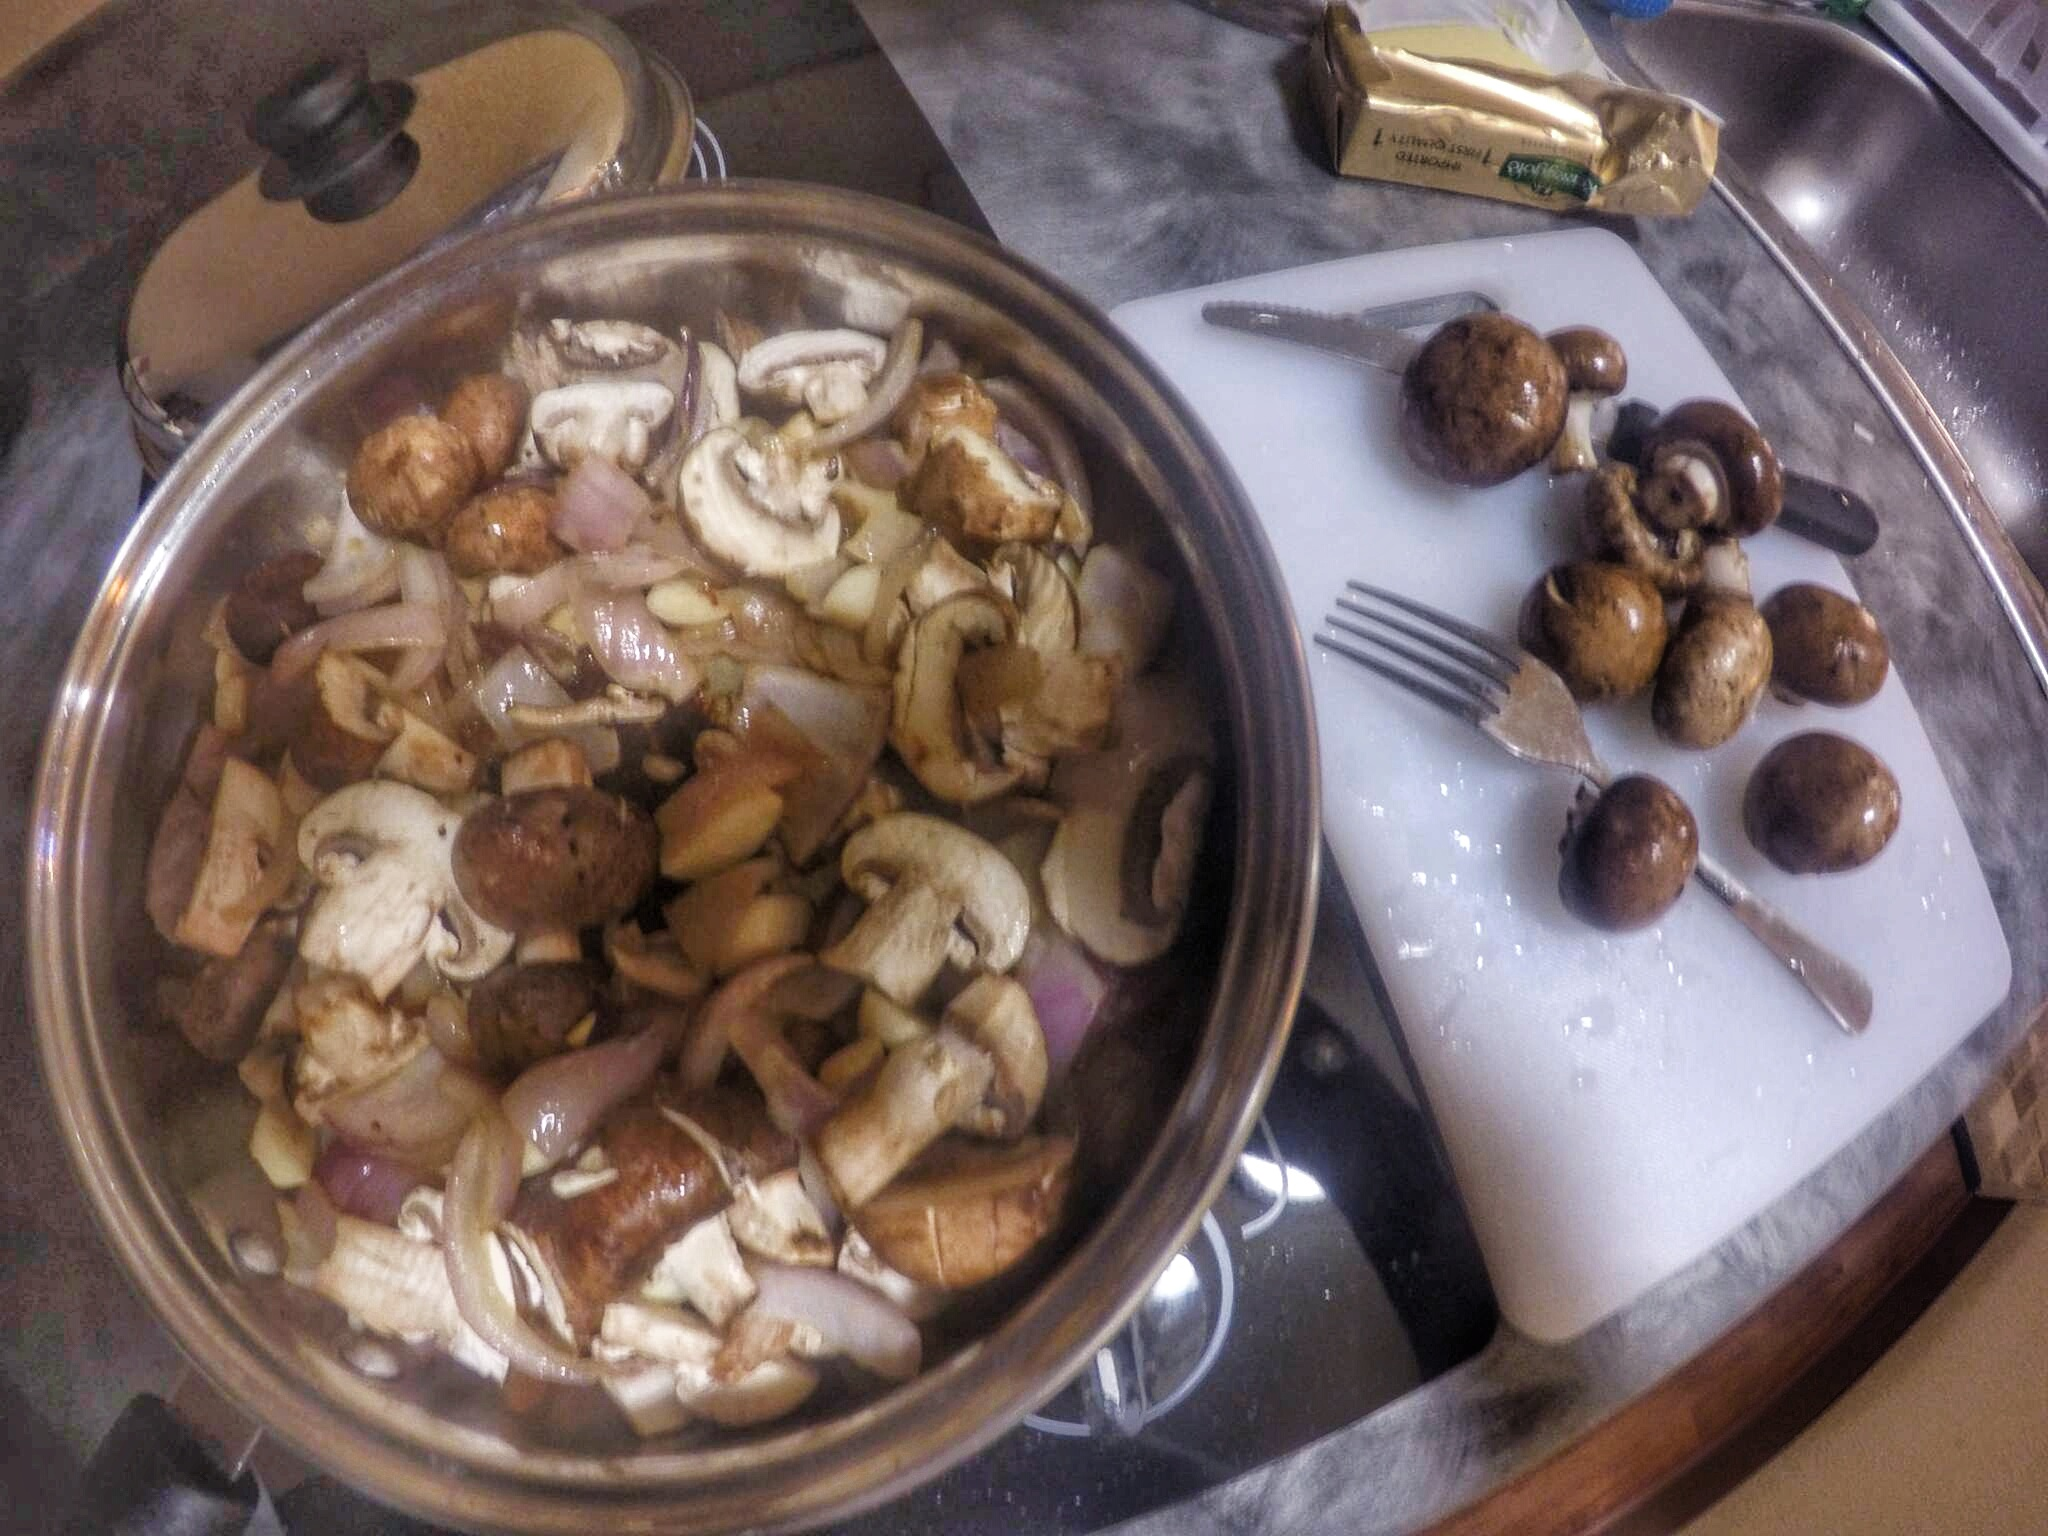 Mushrooms are another great addition to any dish.